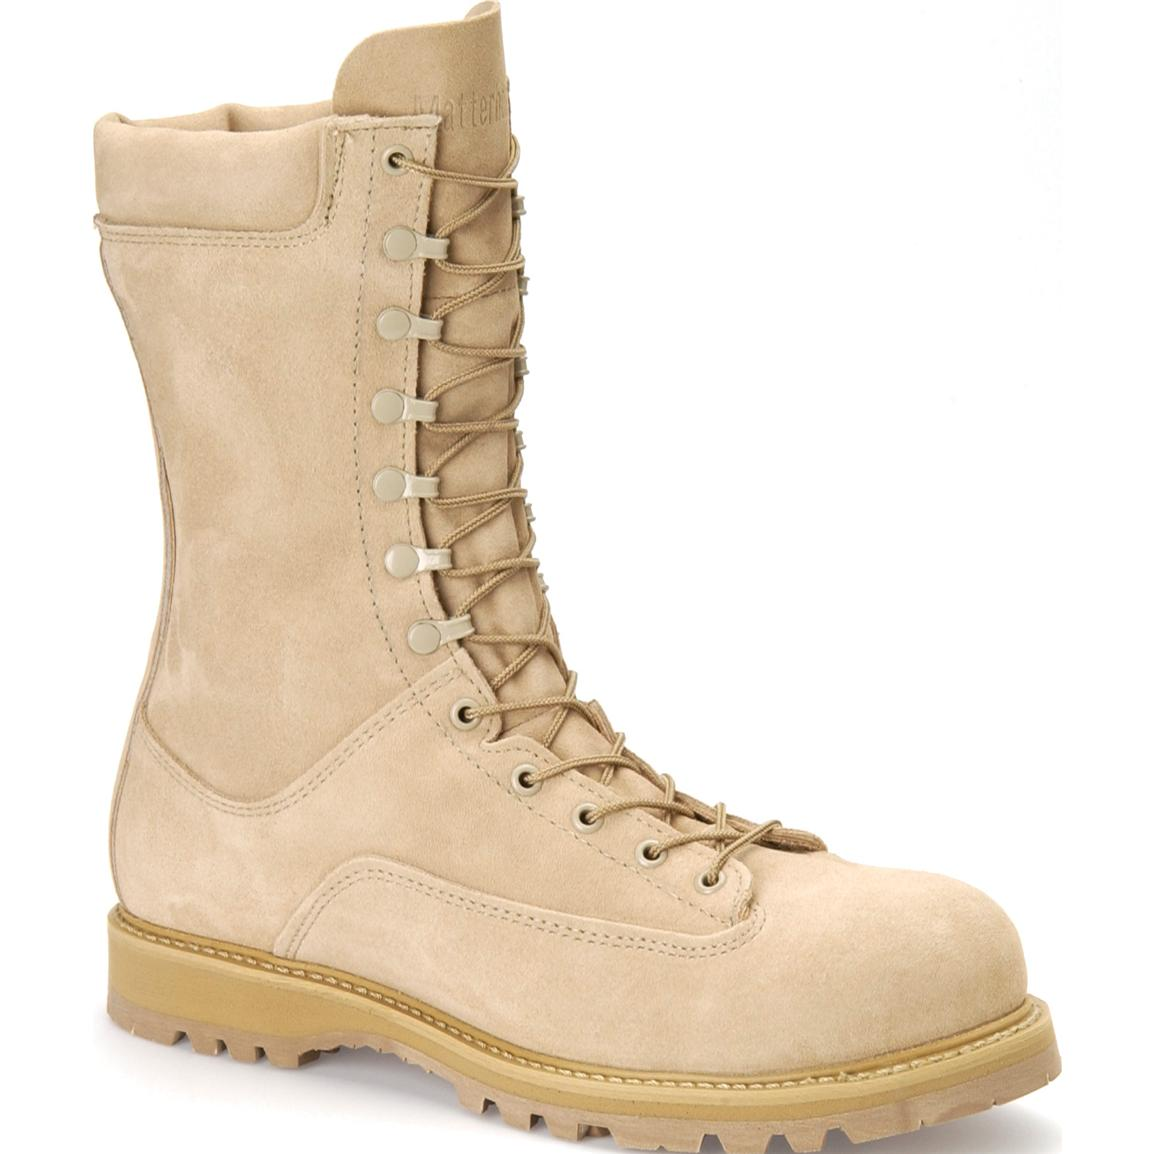 "Matterhorn 10"" 400-gram Thinsulate Insulation Desert Tan Leather Field Combat Boot with Protective Toe"